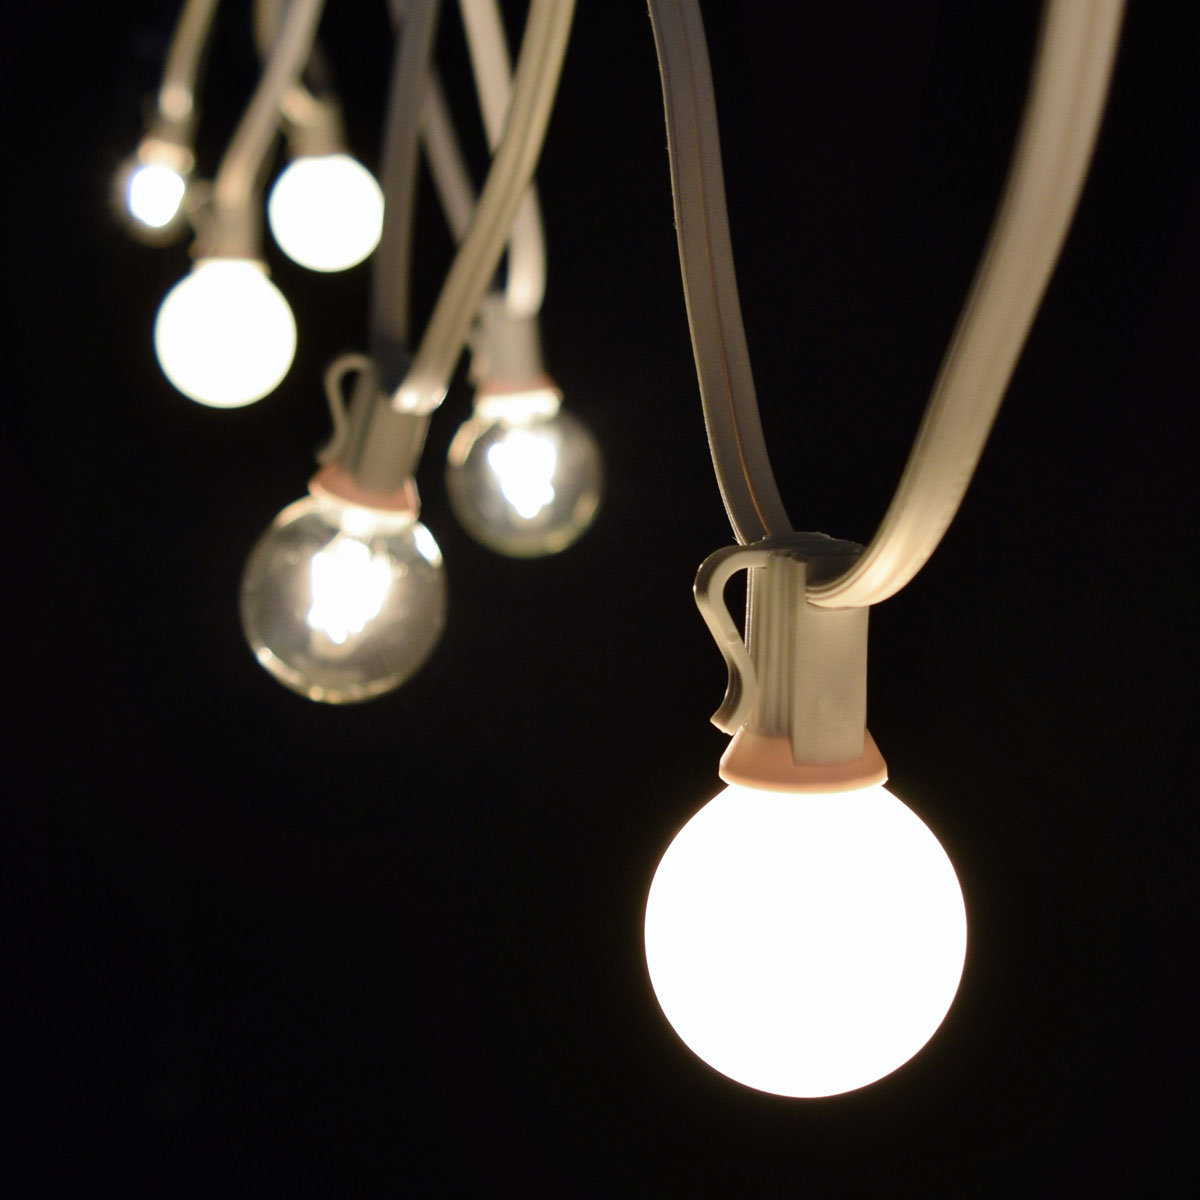 Vintage LED Patio String Lights - 28 ft. Clear Wire